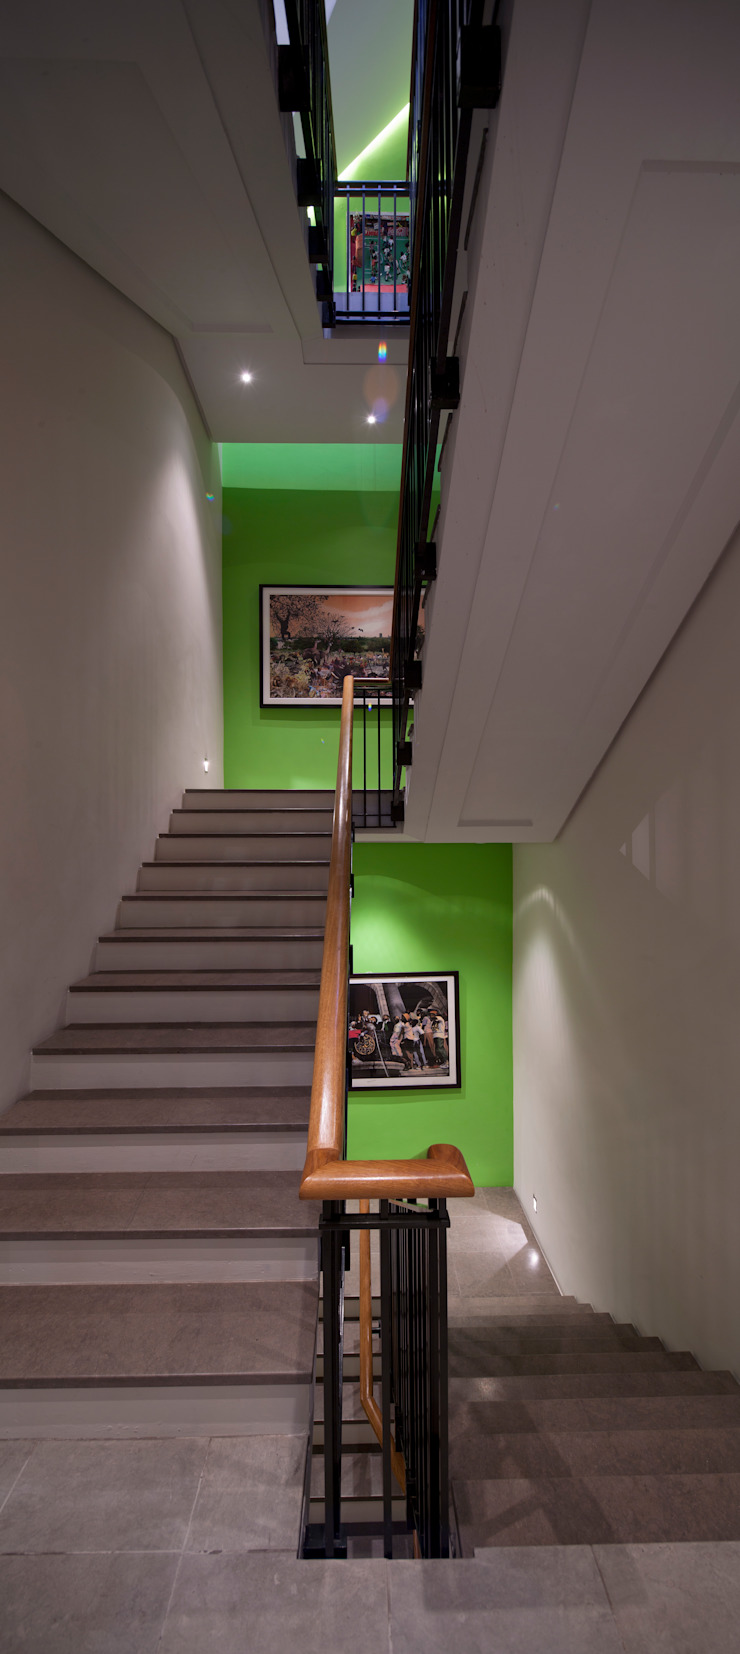 Holford Road 2 Modern corridor, hallway & stairs by KSR Architects Modern